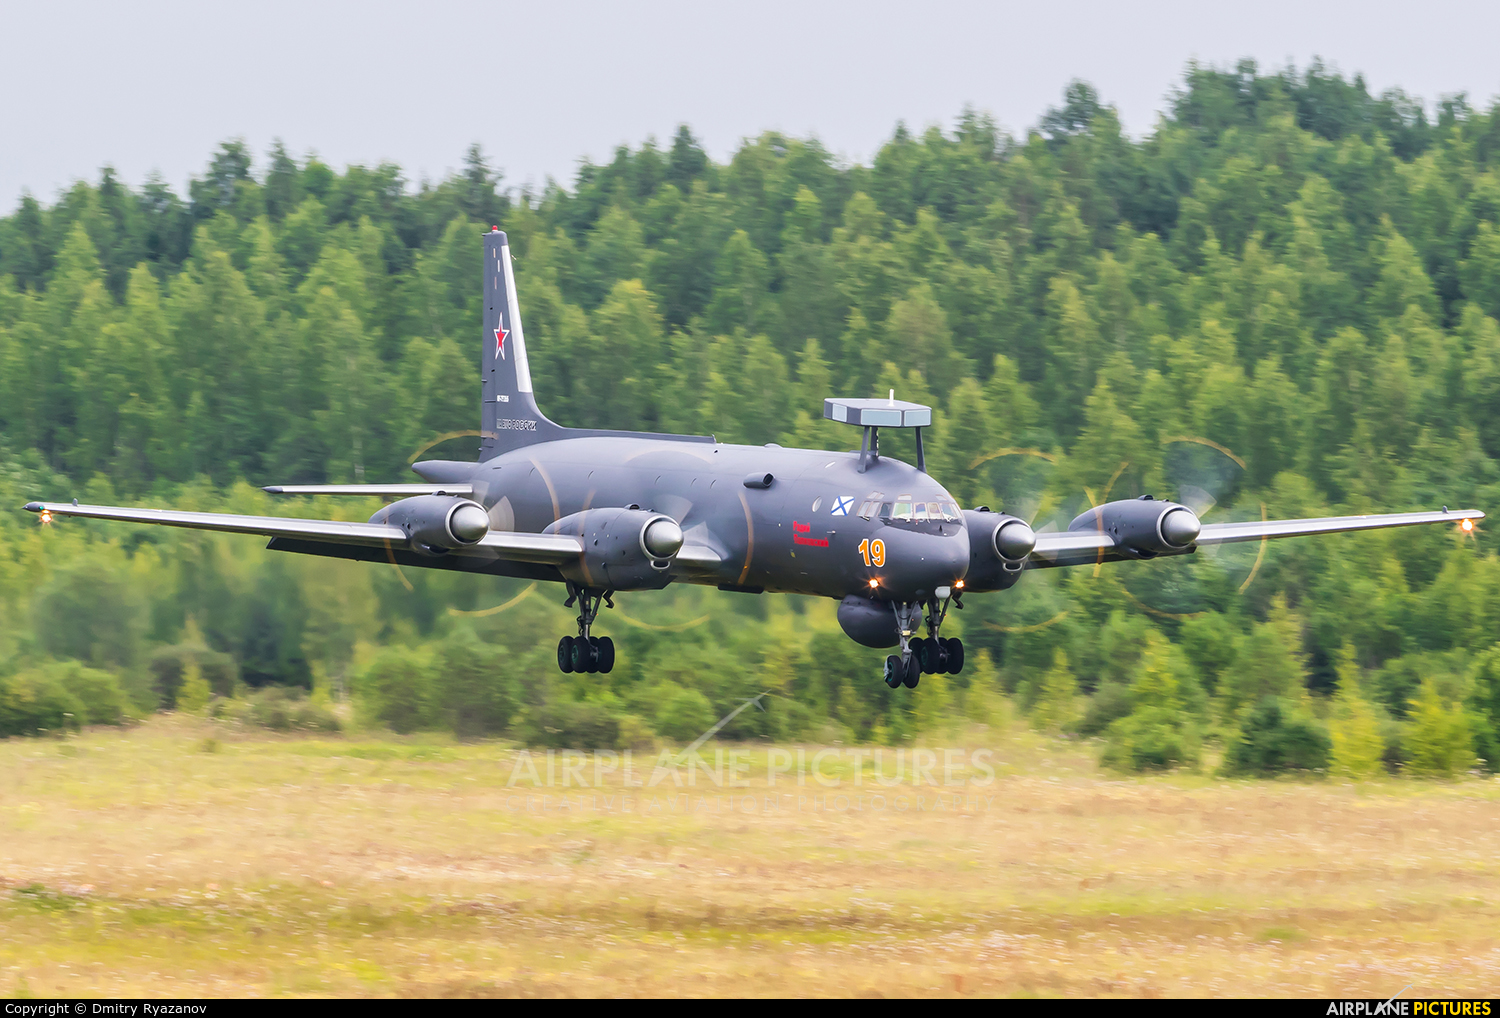 Russia - Navy RF-75355 aircraft at Undisclosed Location